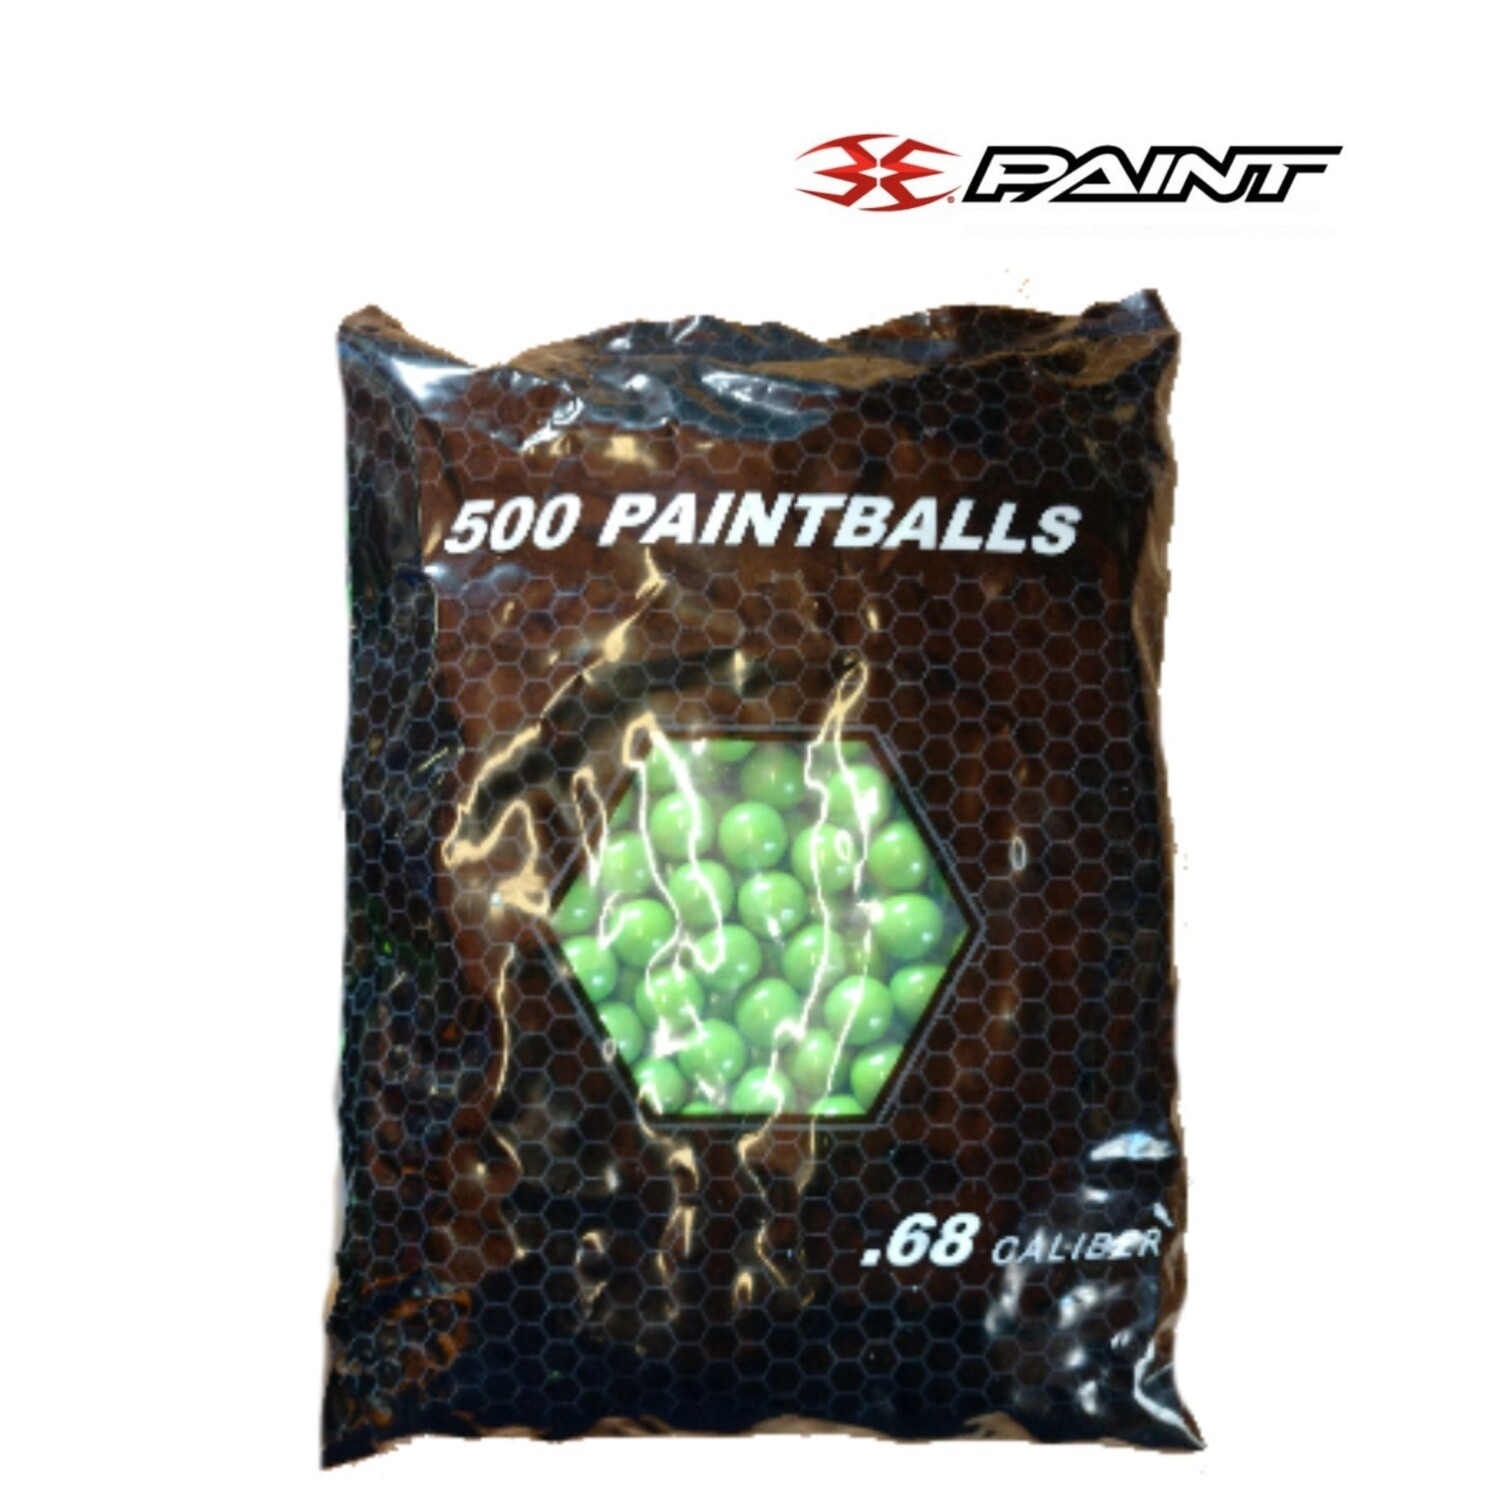 Empire Heat Paintballs - 500 Rounds - .68 caliber - Color May Vary